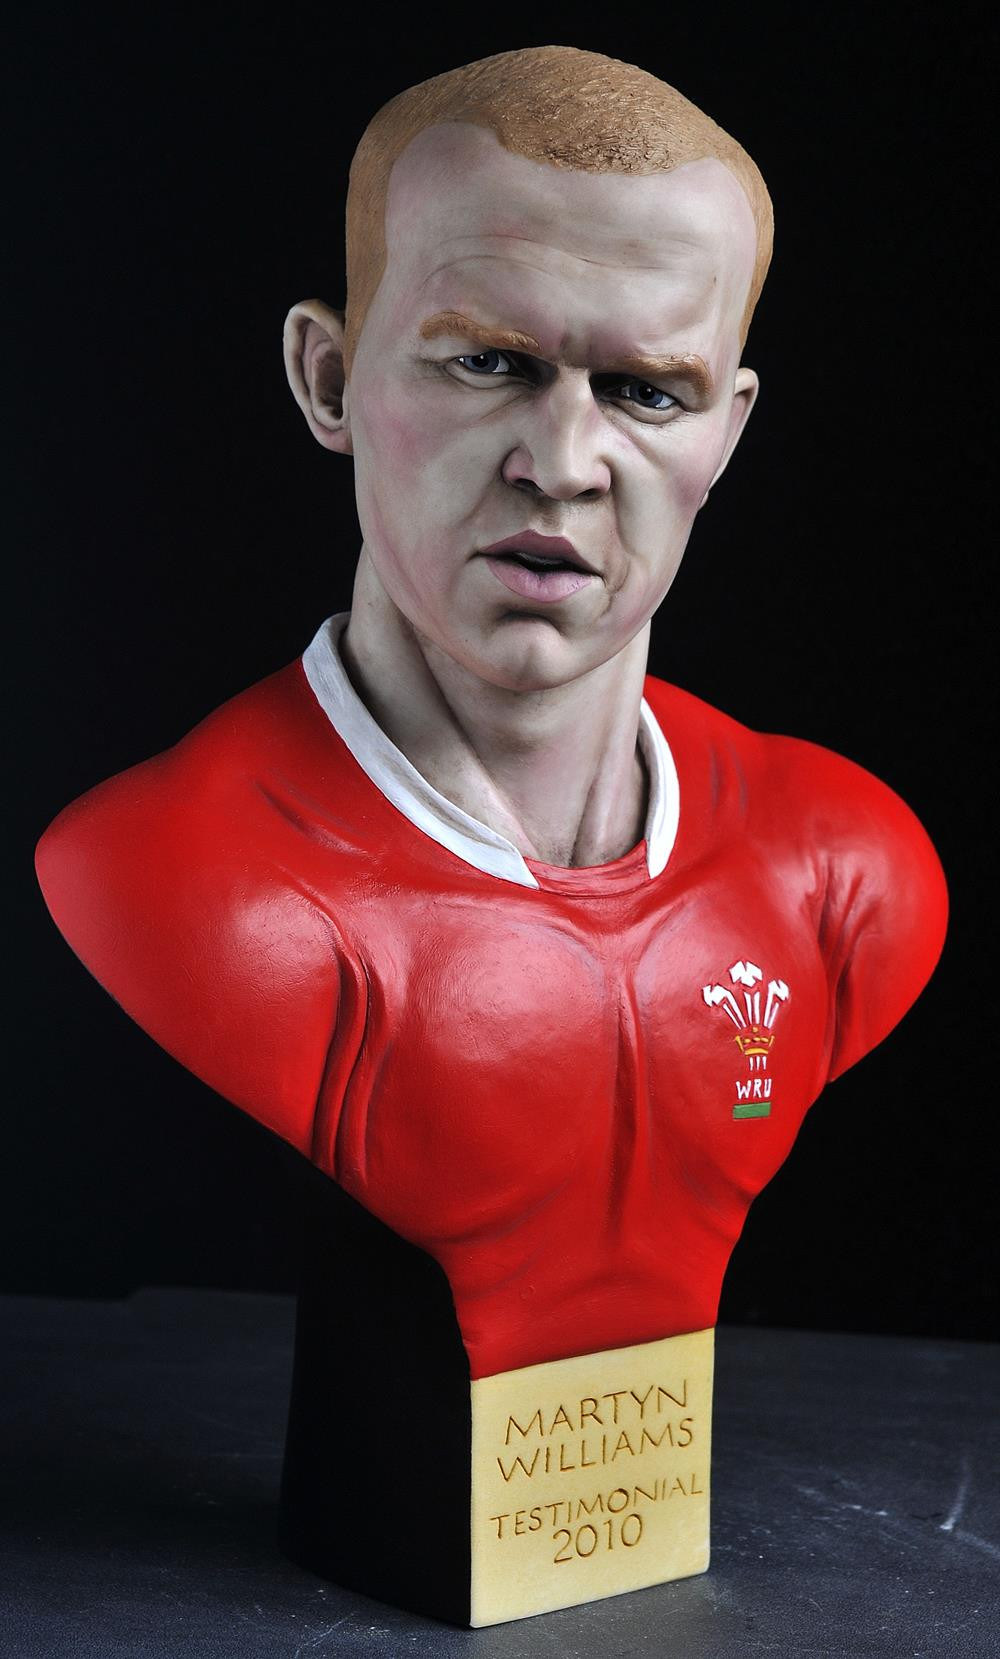 Martyn Williams Bust *Contact 2 Order*